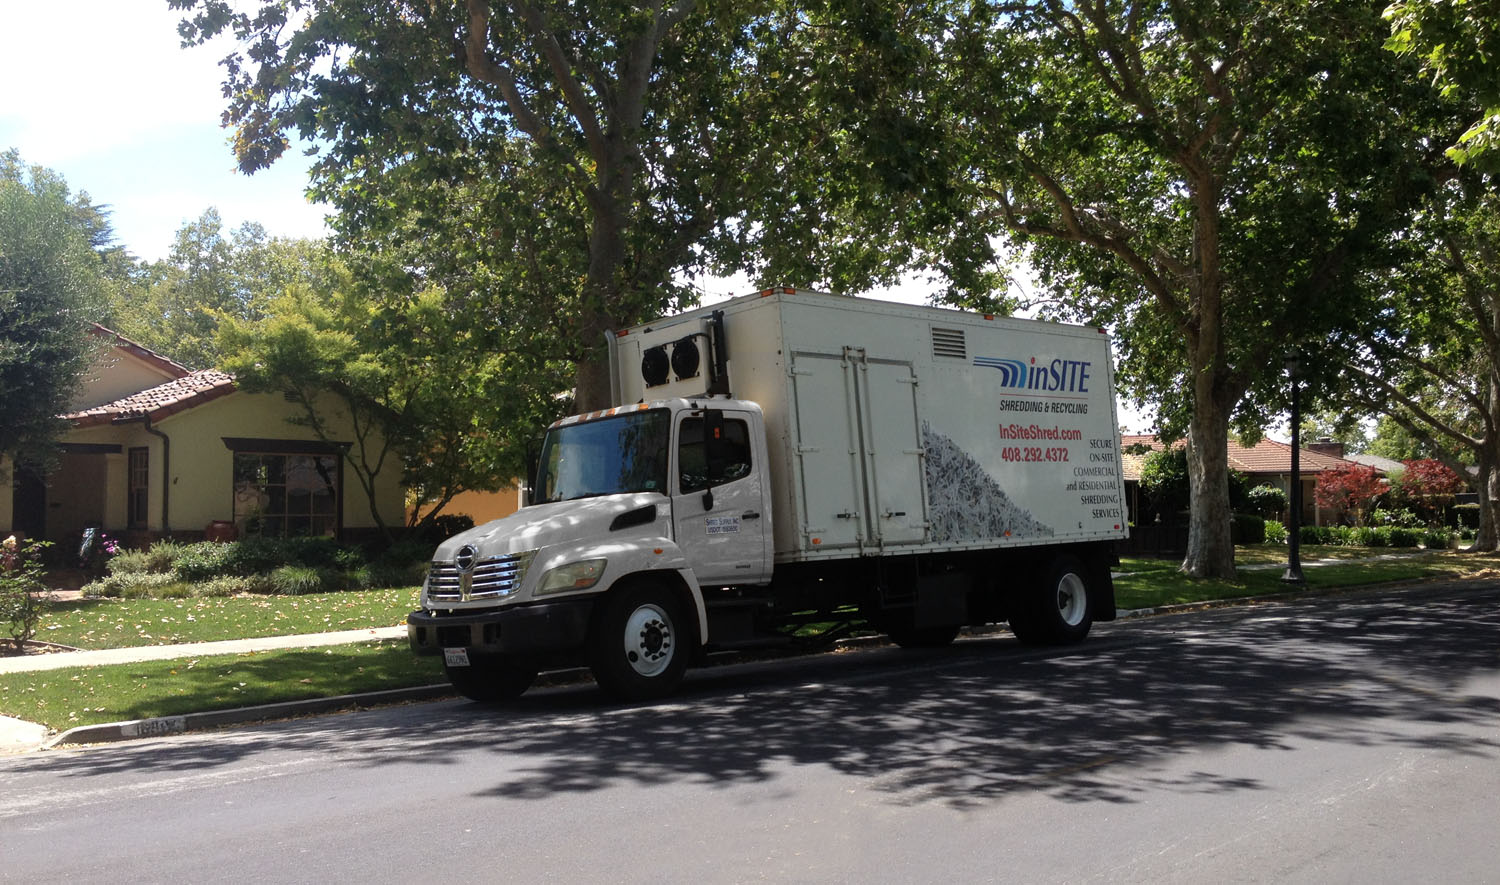 on site shredding for your home - mobile truck in operation